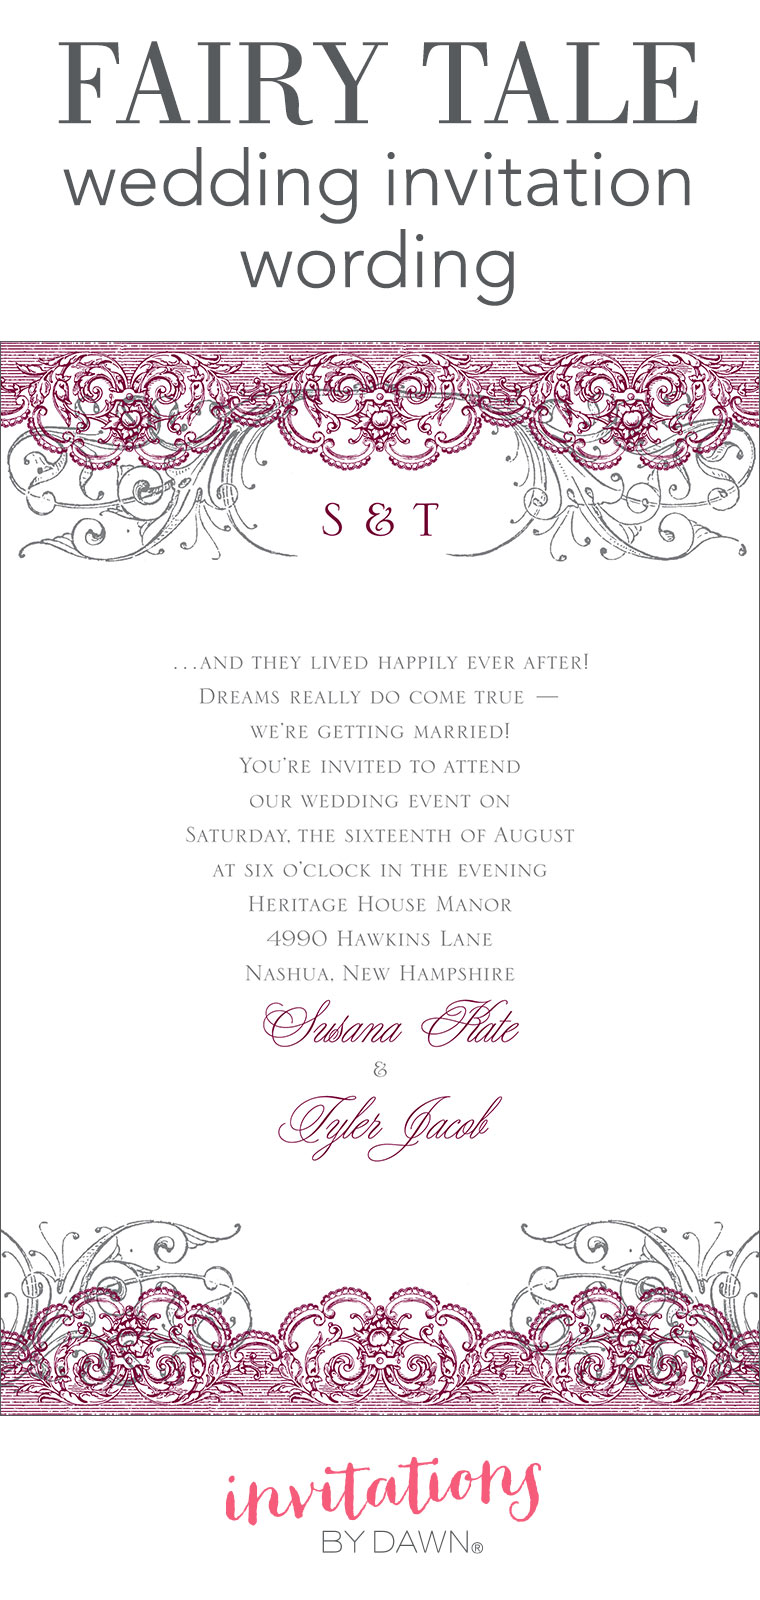 Fairy tale wedding invitation wording invitations by dawn stopboris Gallery